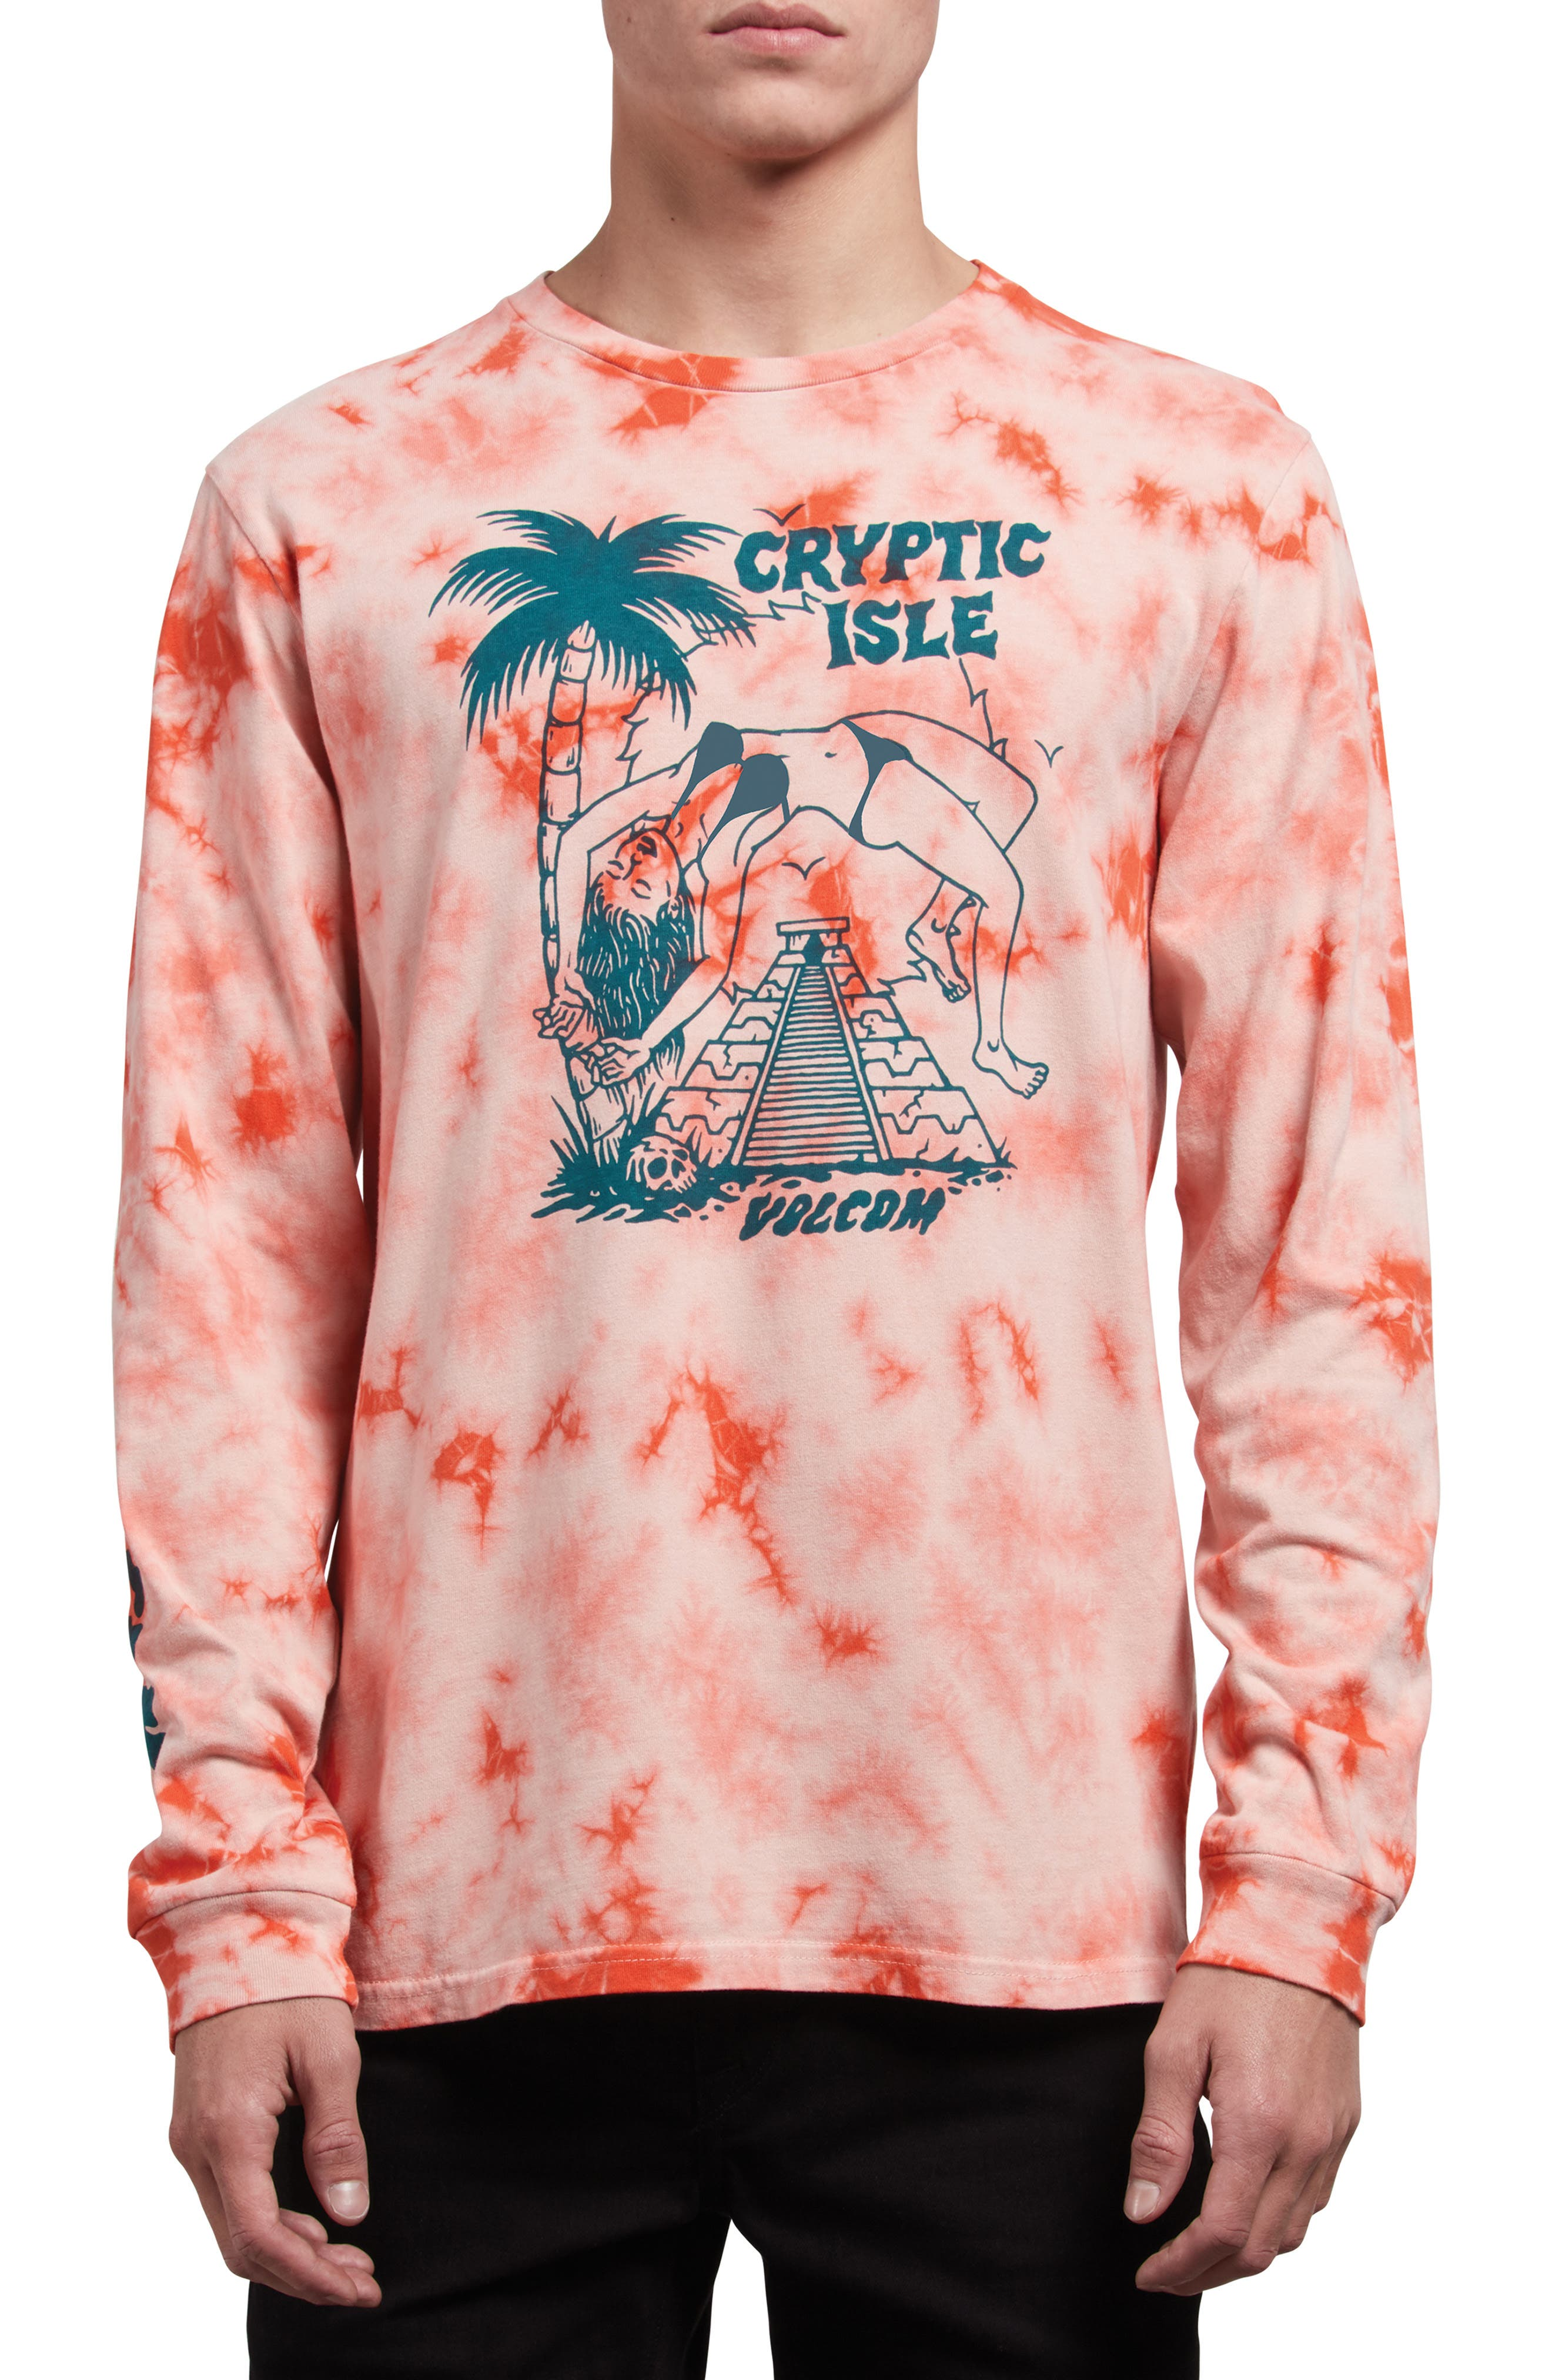 Tomb Graphic T-Shirt,                             Main thumbnail 1, color,                             ORANGE GLOW